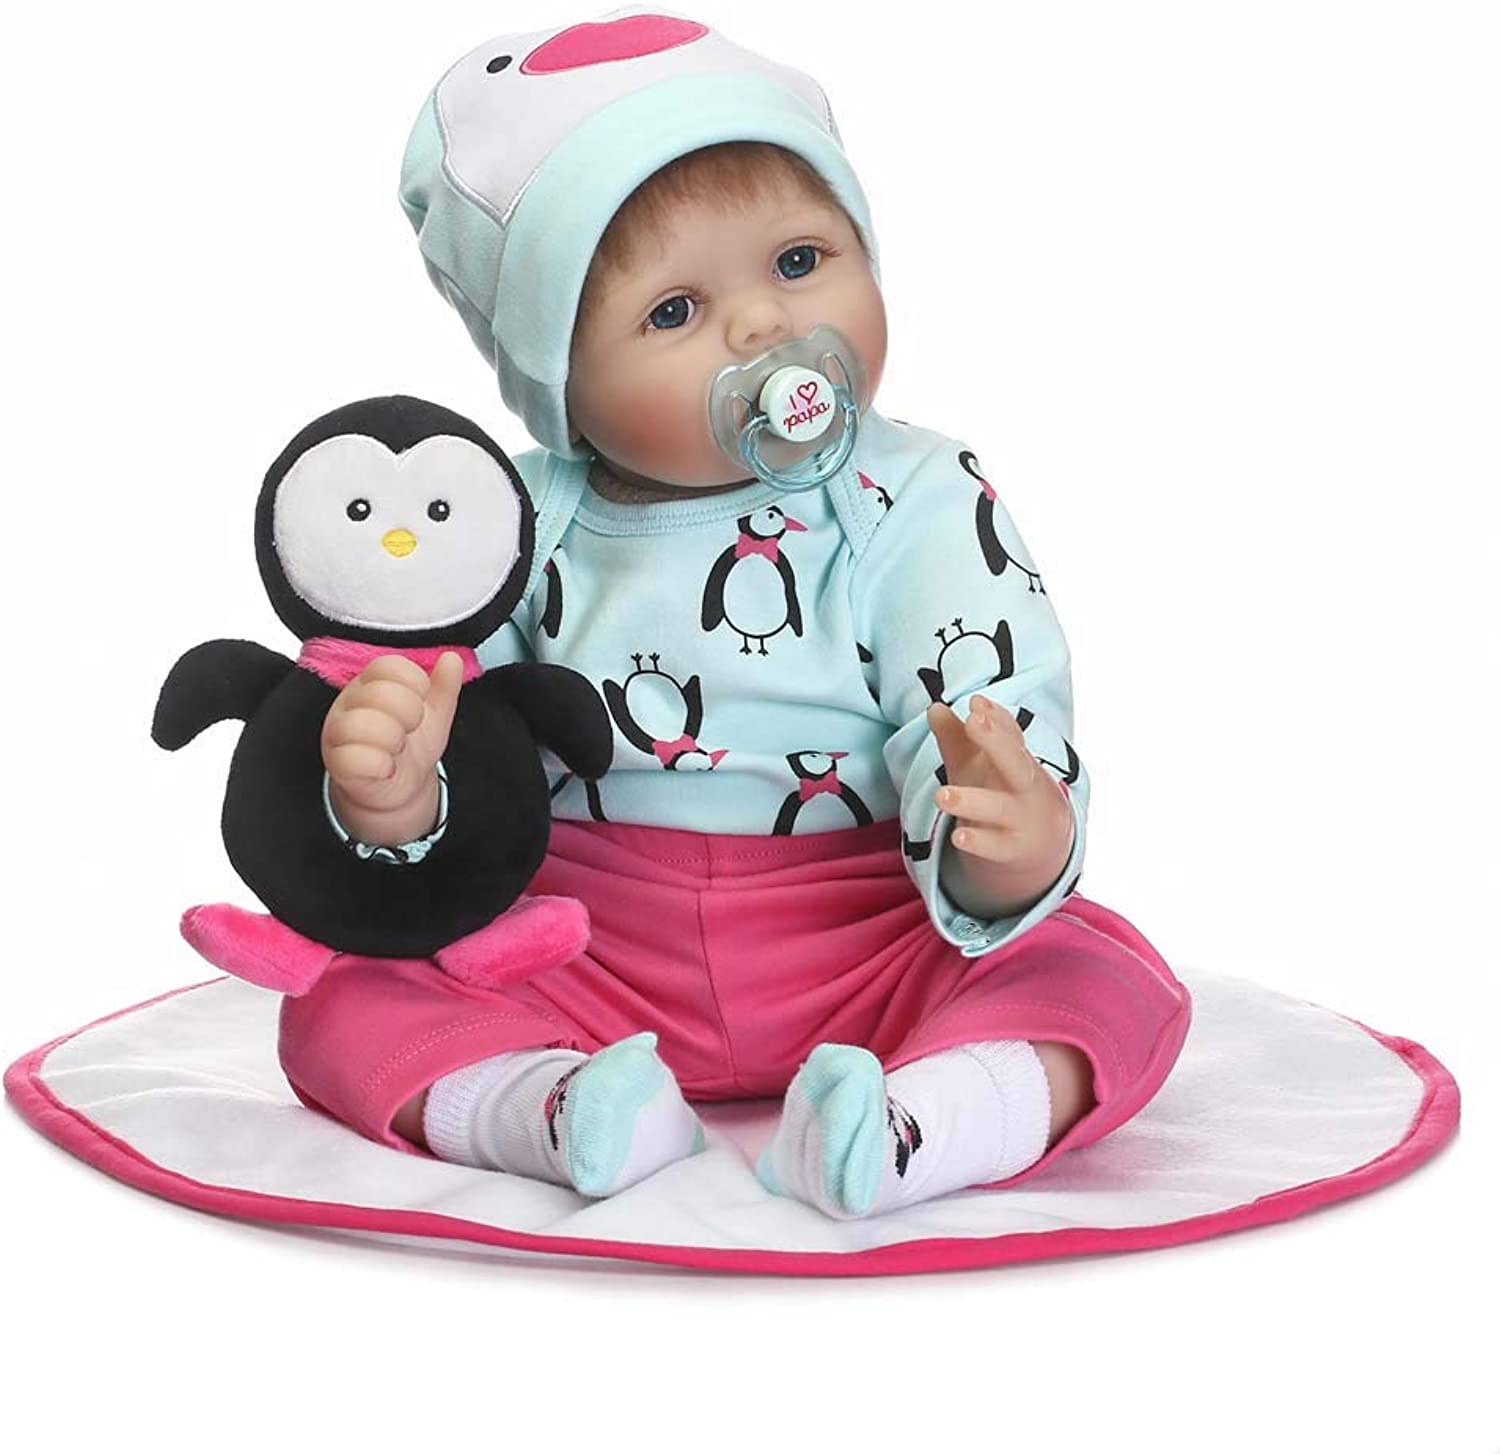 Reborn Baby Doll 22 Inch Handmade Real Lifelike Baby Doll With A Cute Penguin